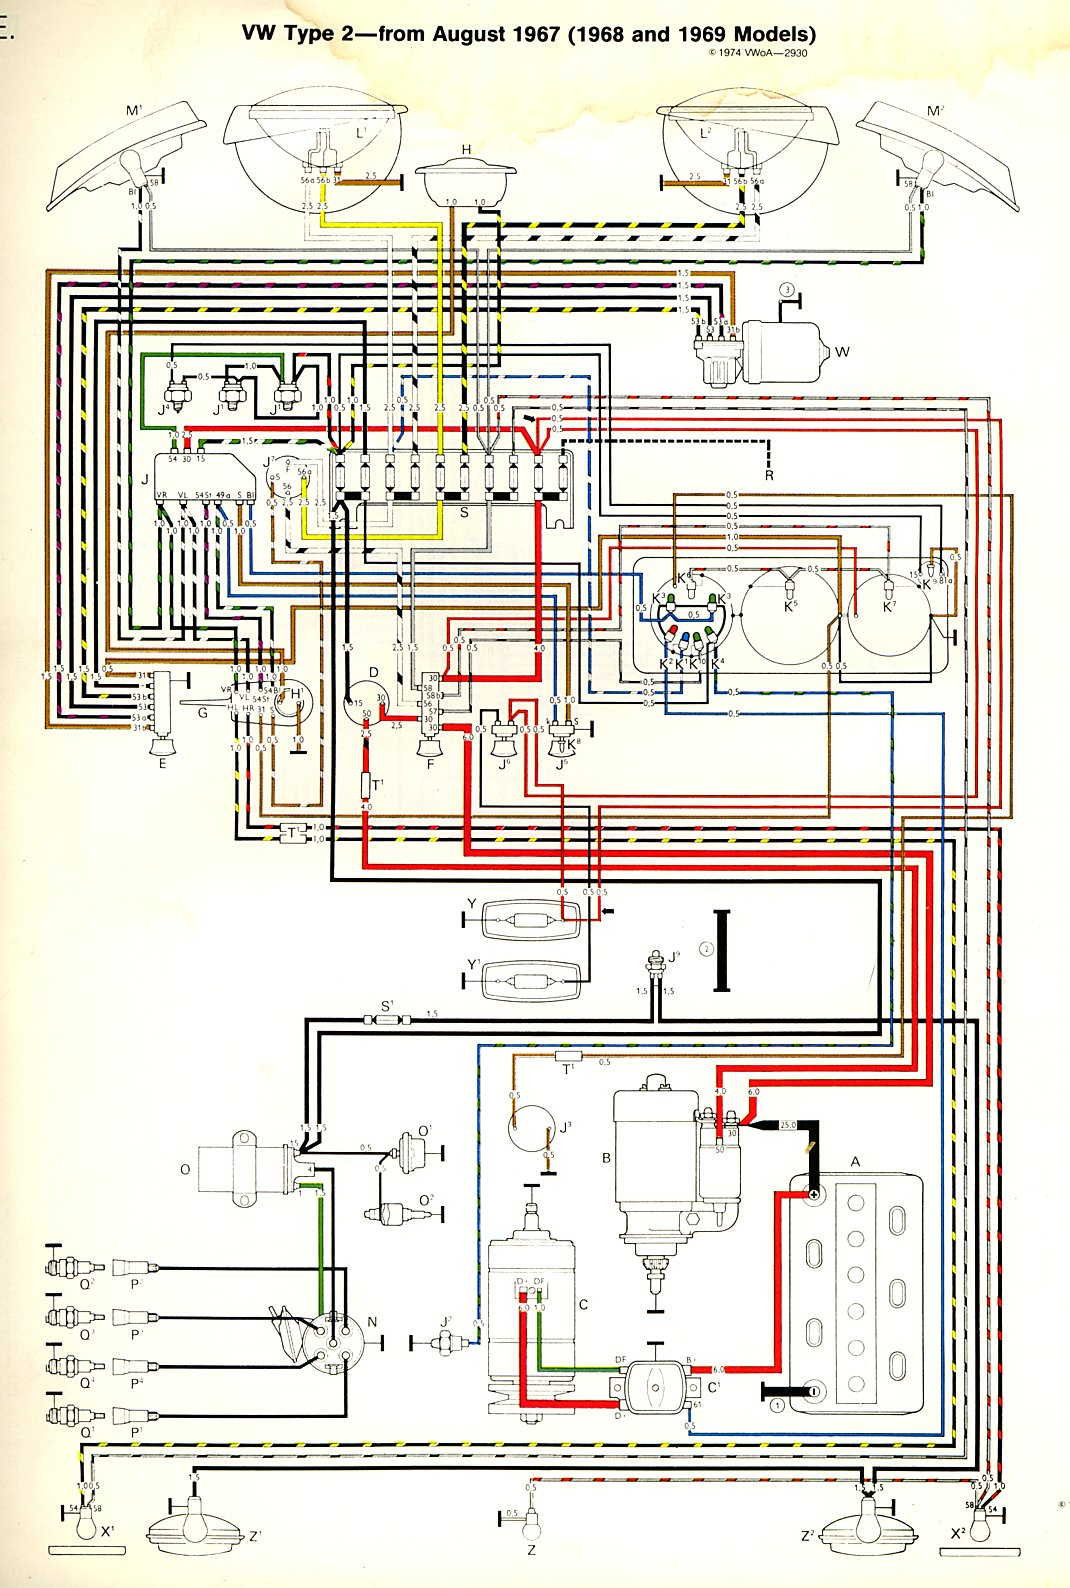 baybus_6869a 1968 69 bus wiring diagram thegoldenbug com 1971 vw super beetle wiring diagram at bayanpartner.co